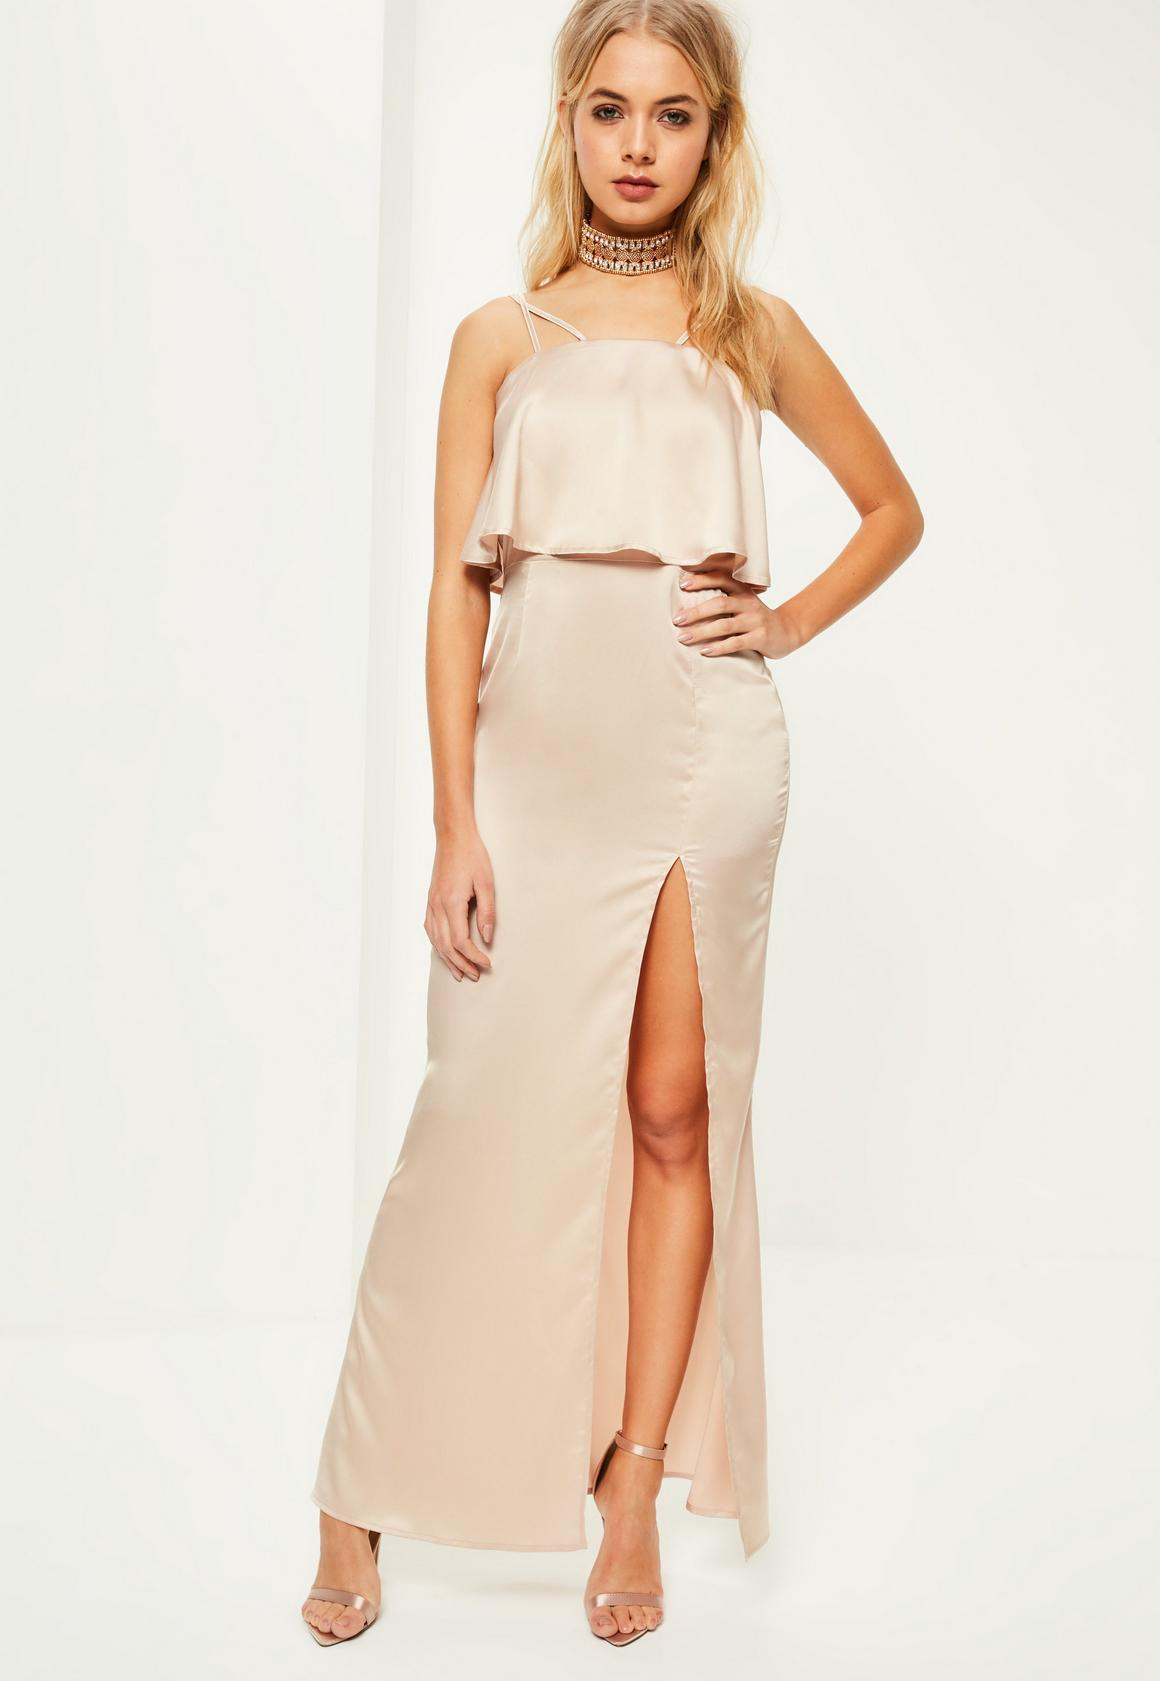 Evening Dresses For Less Uk - Homecoming Prom Dresses